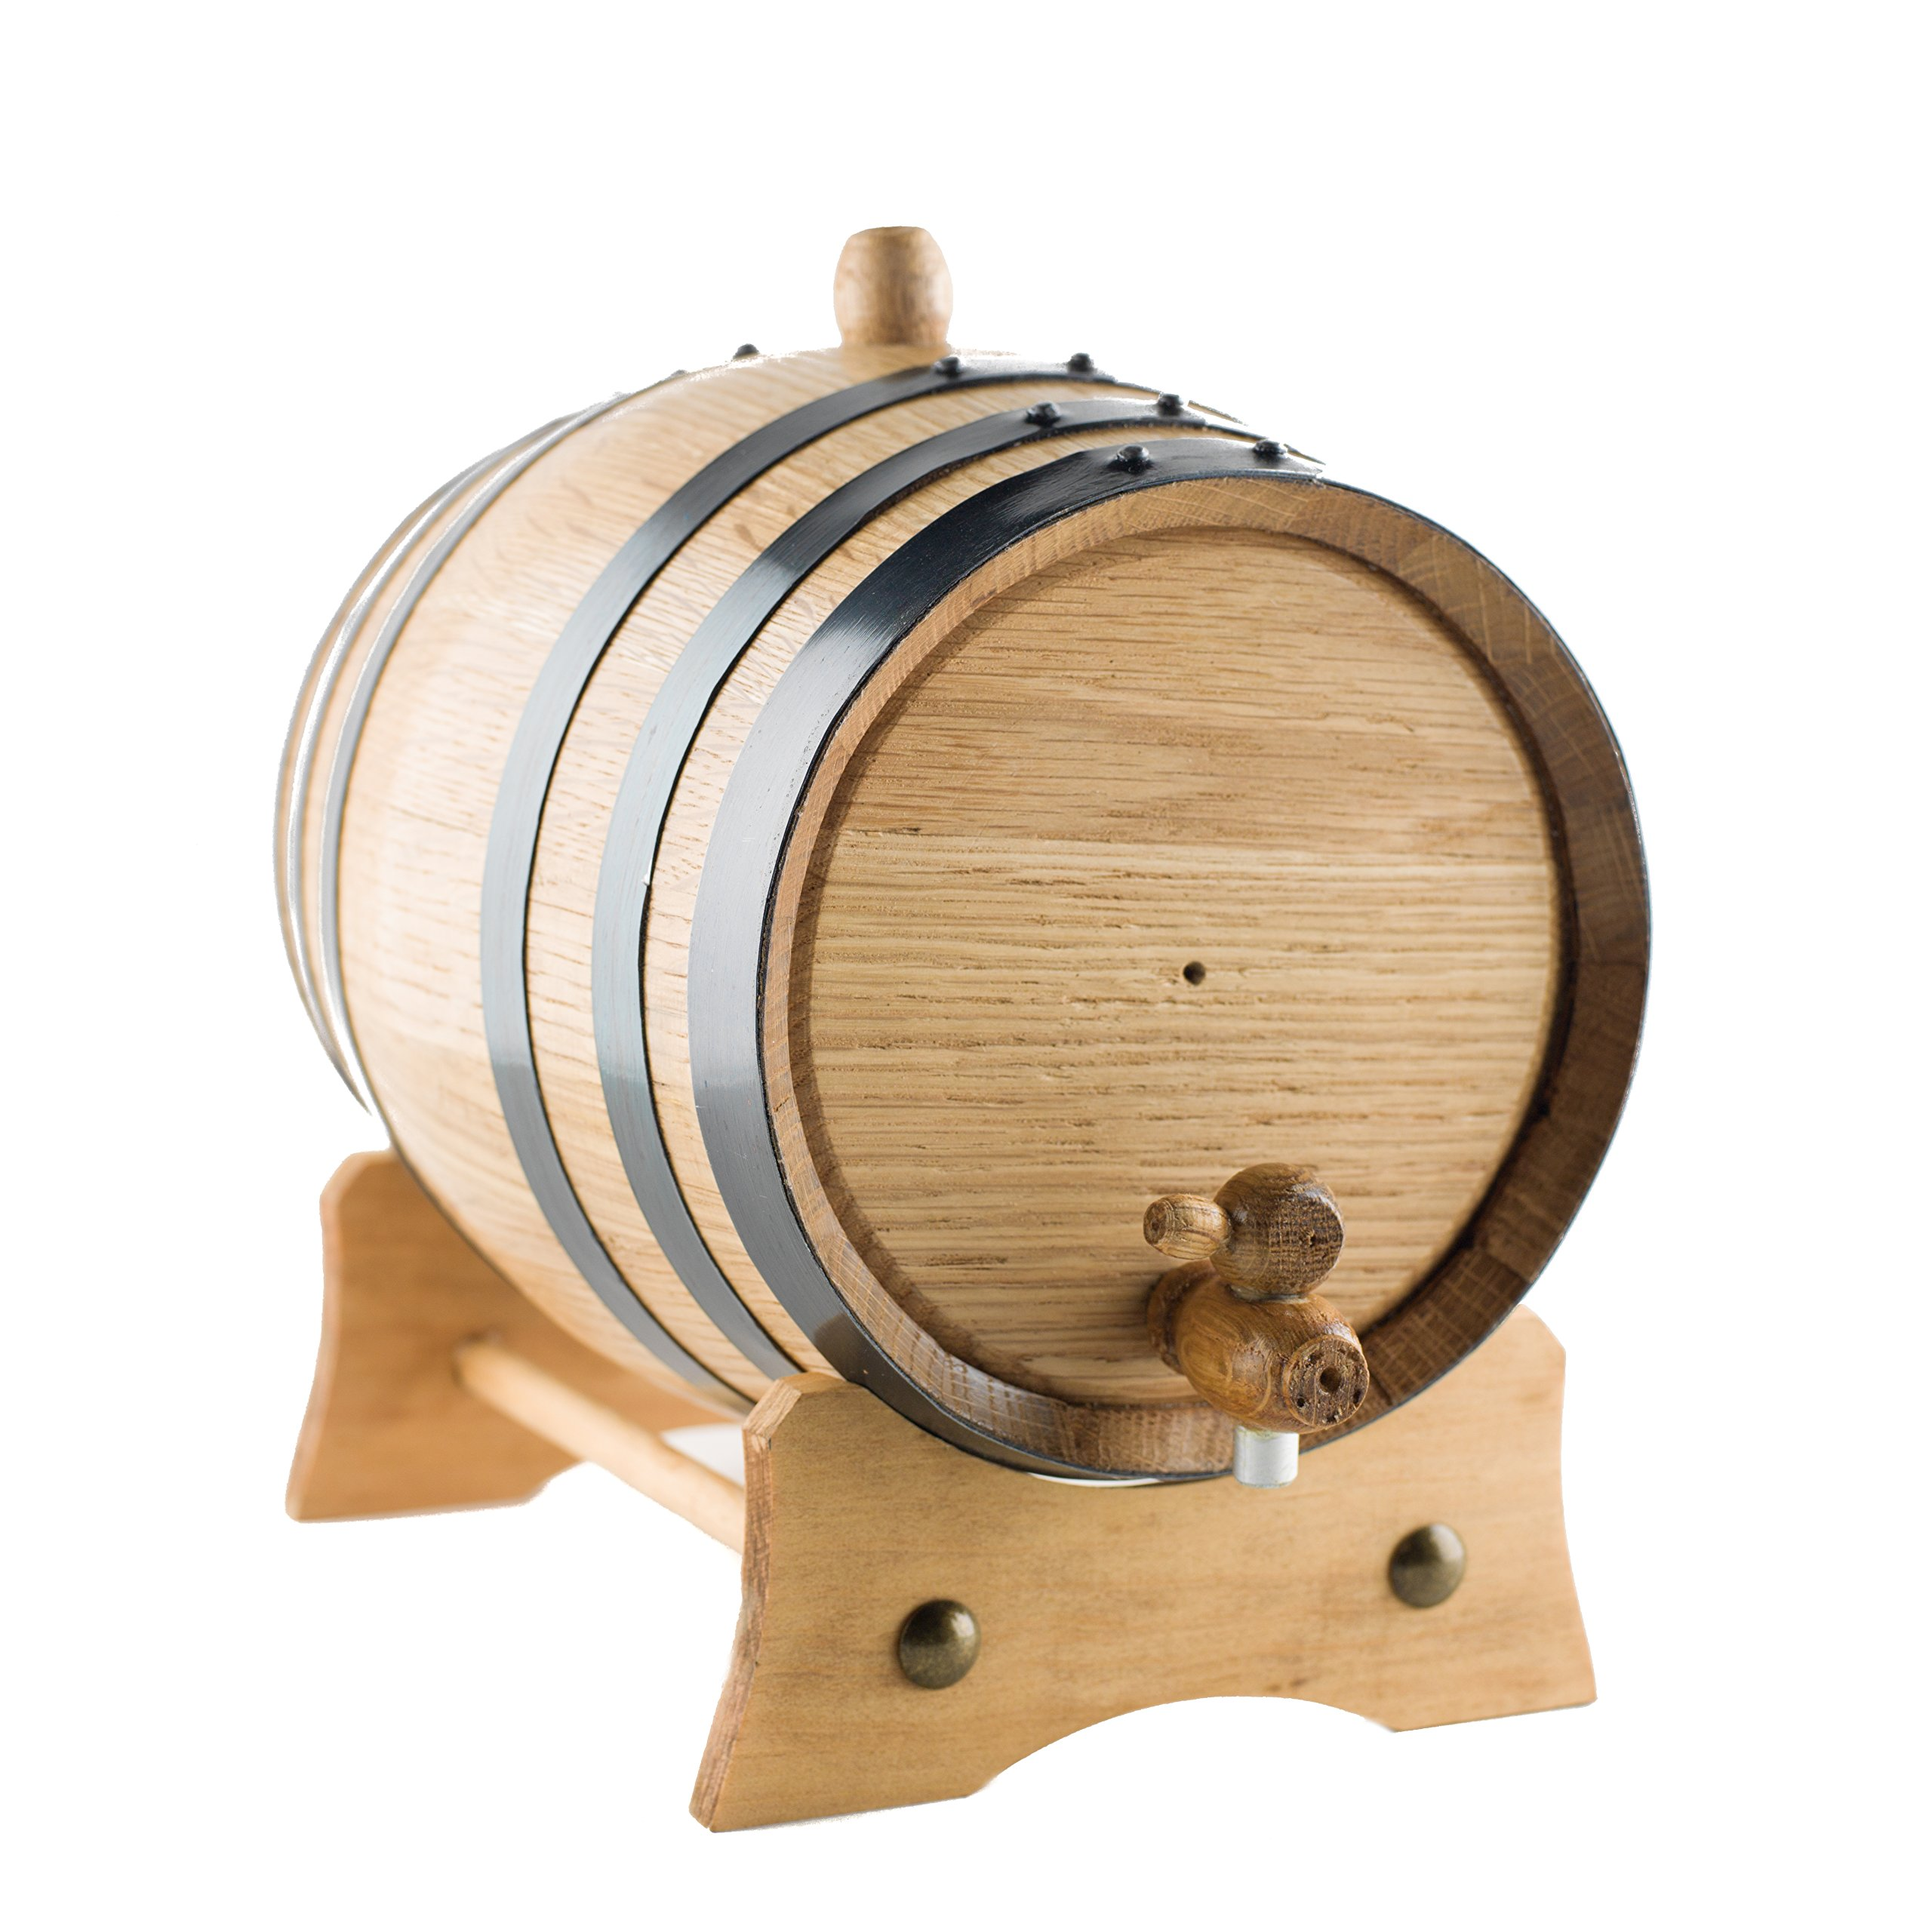 Sofia's Findings 3-Liter American Oak Aging Barrel | Age Your own Tequila, Whiskey, Rum, Bourbon, Wine - 3 Liter or .8 Gallons